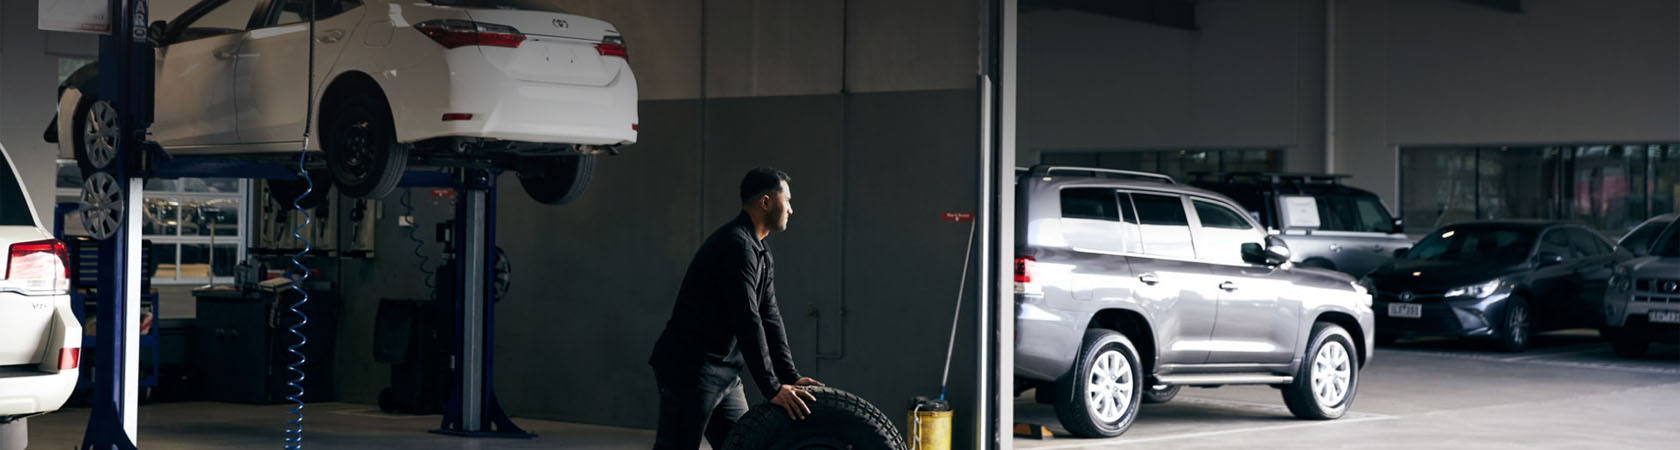 Busselton Toyota Vehicle Service